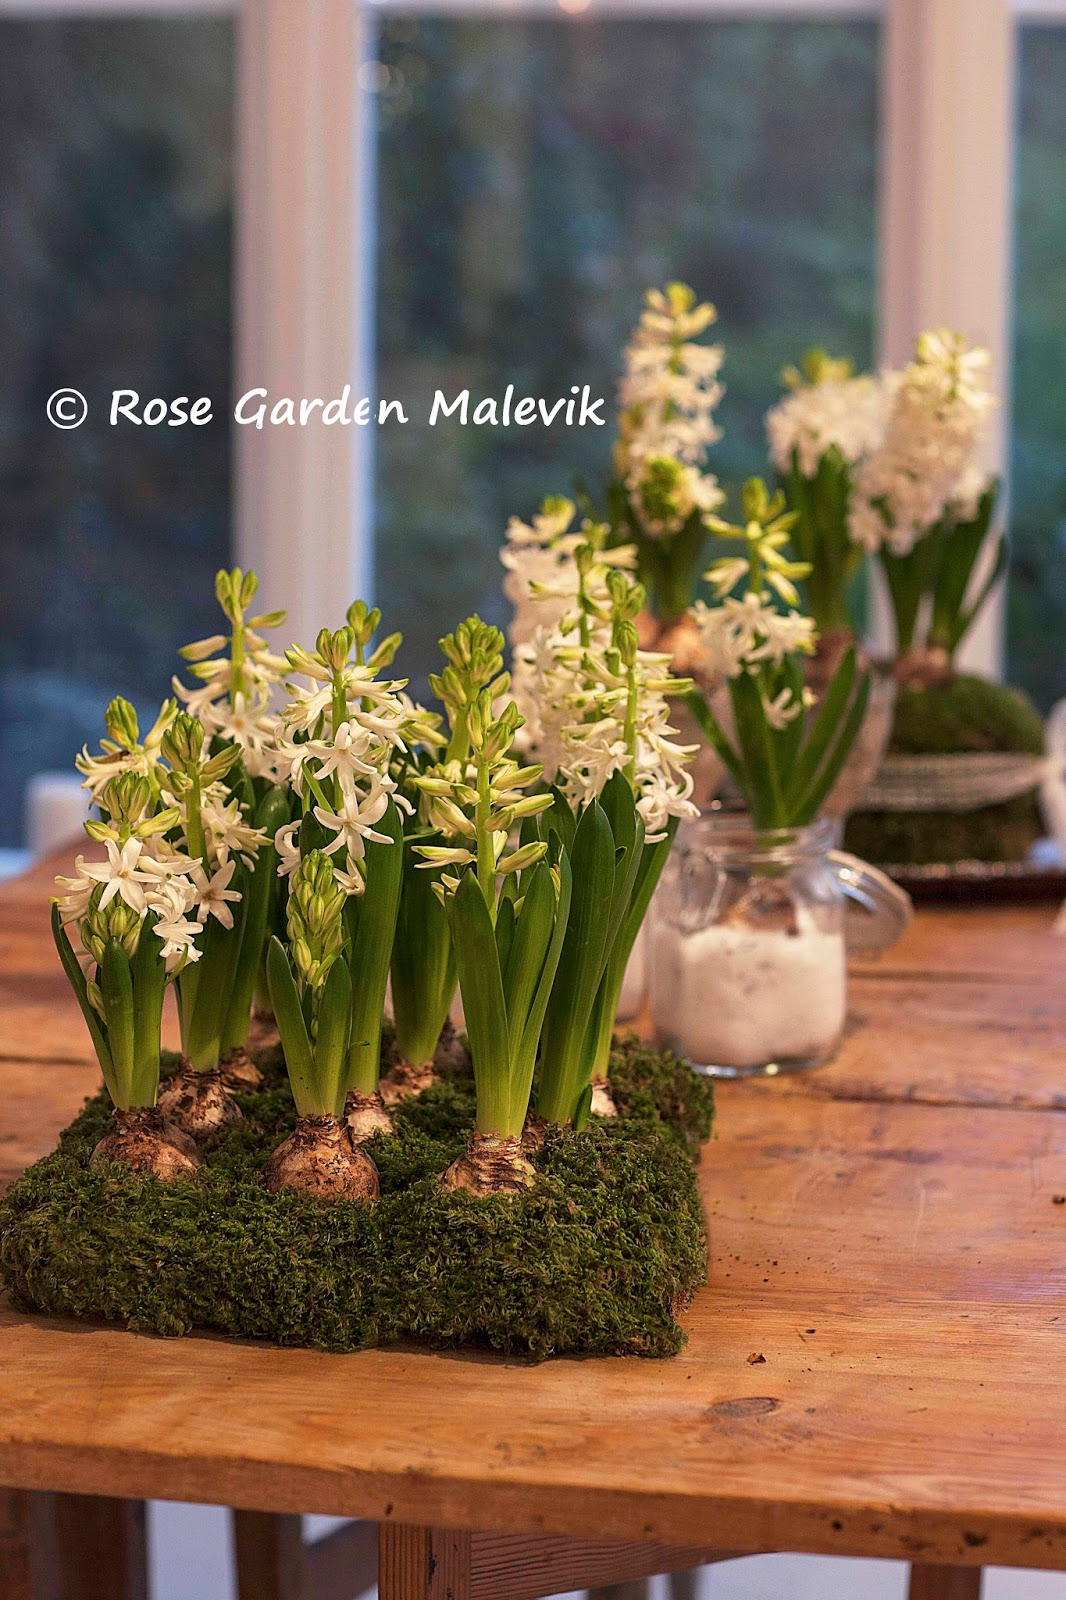 Rose garden malevik: pyssel med hyacinter ~ arrangement with hyacinths